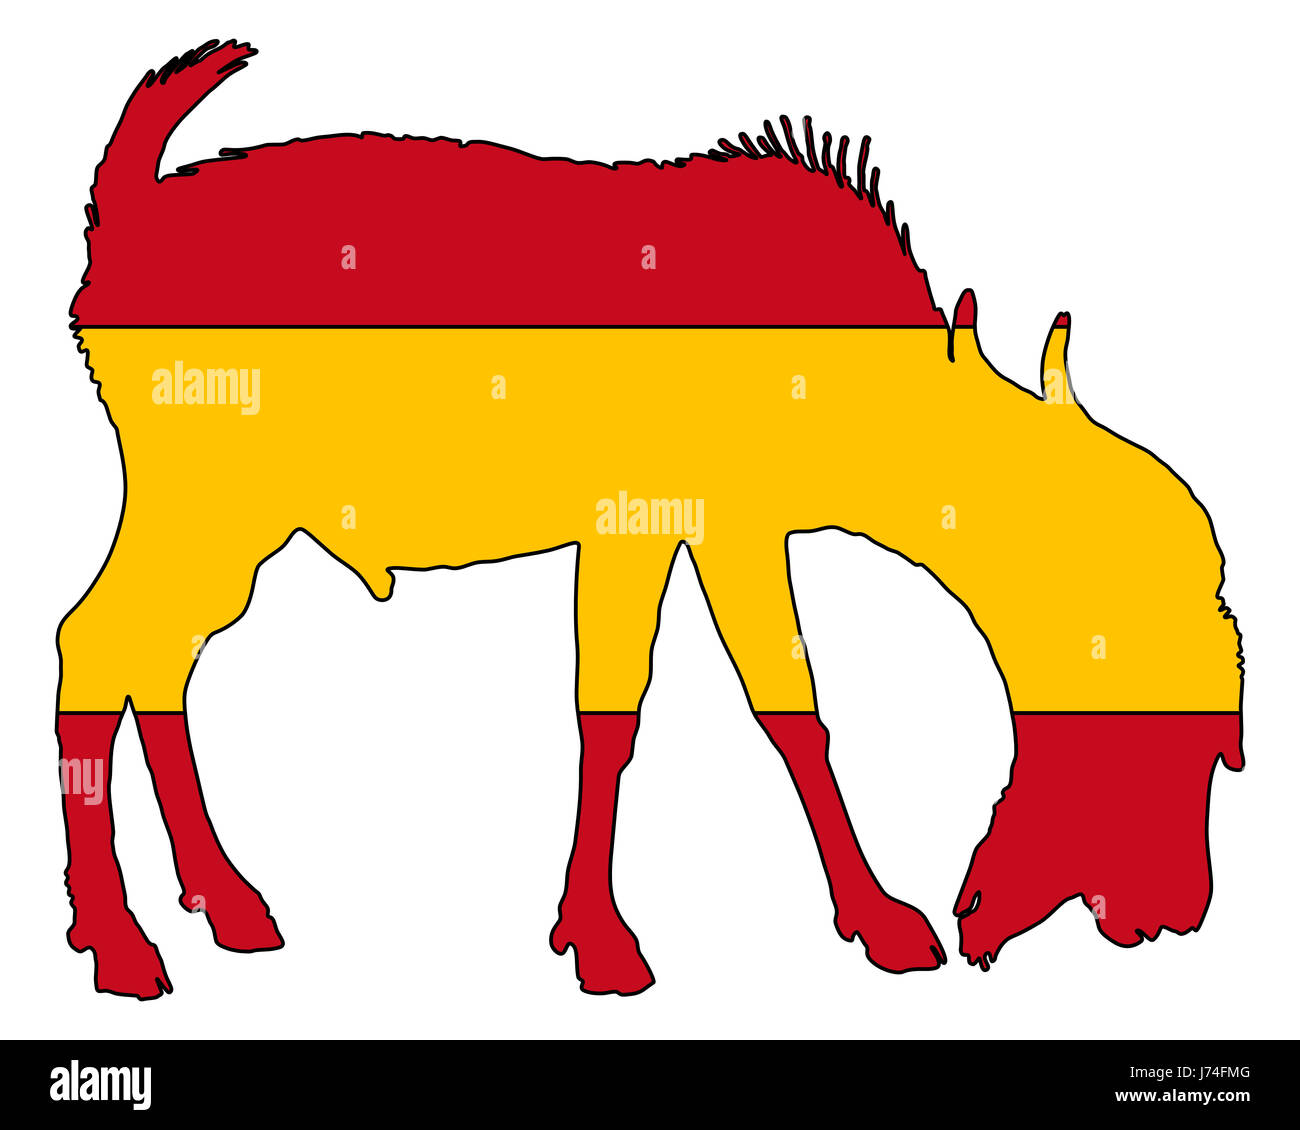 Image of: Spanish Flashcards Animal Mammal Spain Flag Farm Animal Hegoat Hispanic Spanish Sign Signal Alamy Animal Mammal Spain Flag Farm Animal Hegoat Hispanic Spanish Sign